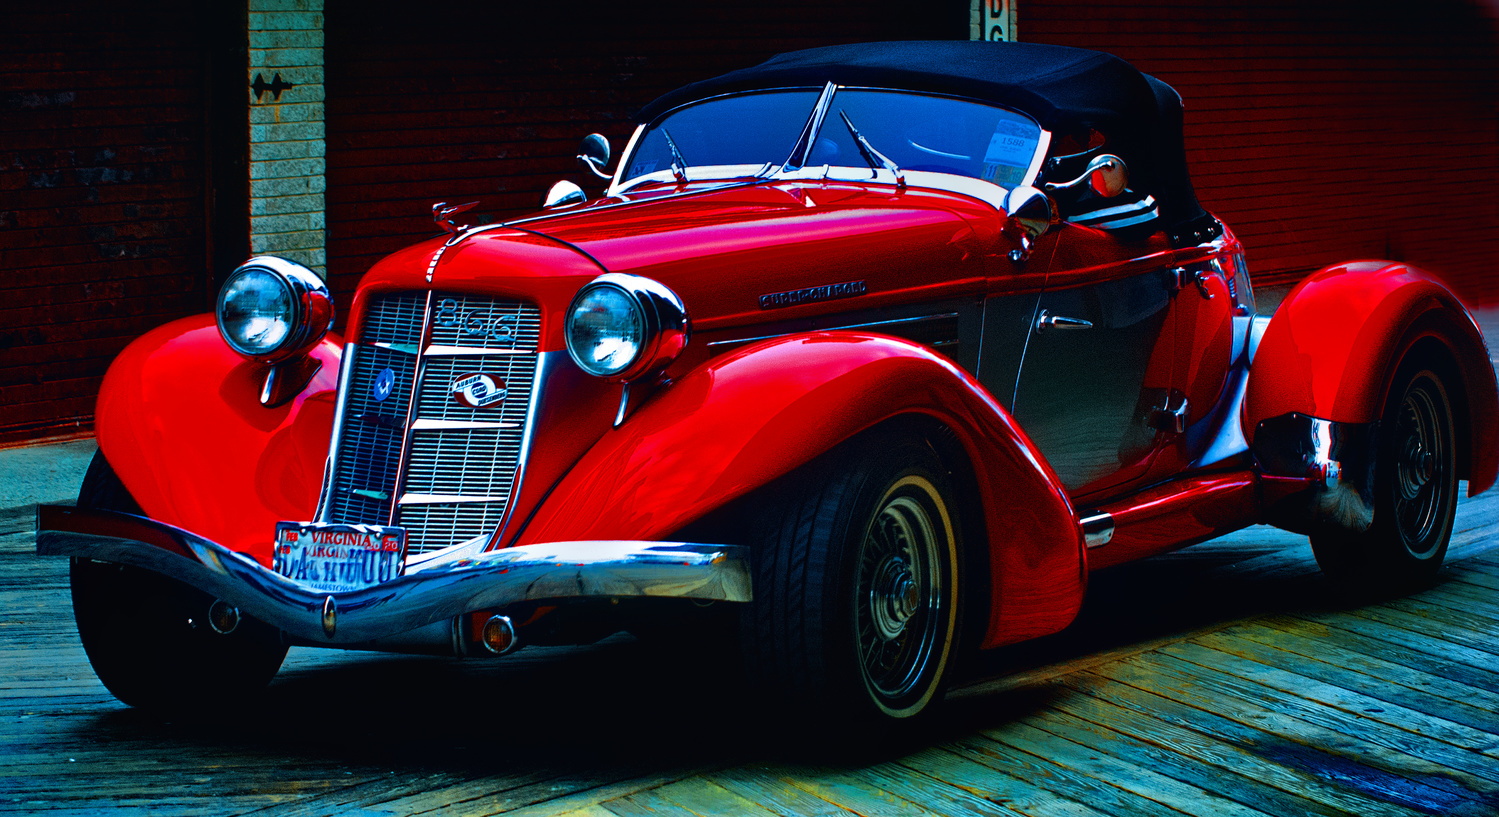 1935 Auburn 866 Boattail Speedster by Bill Jonscher